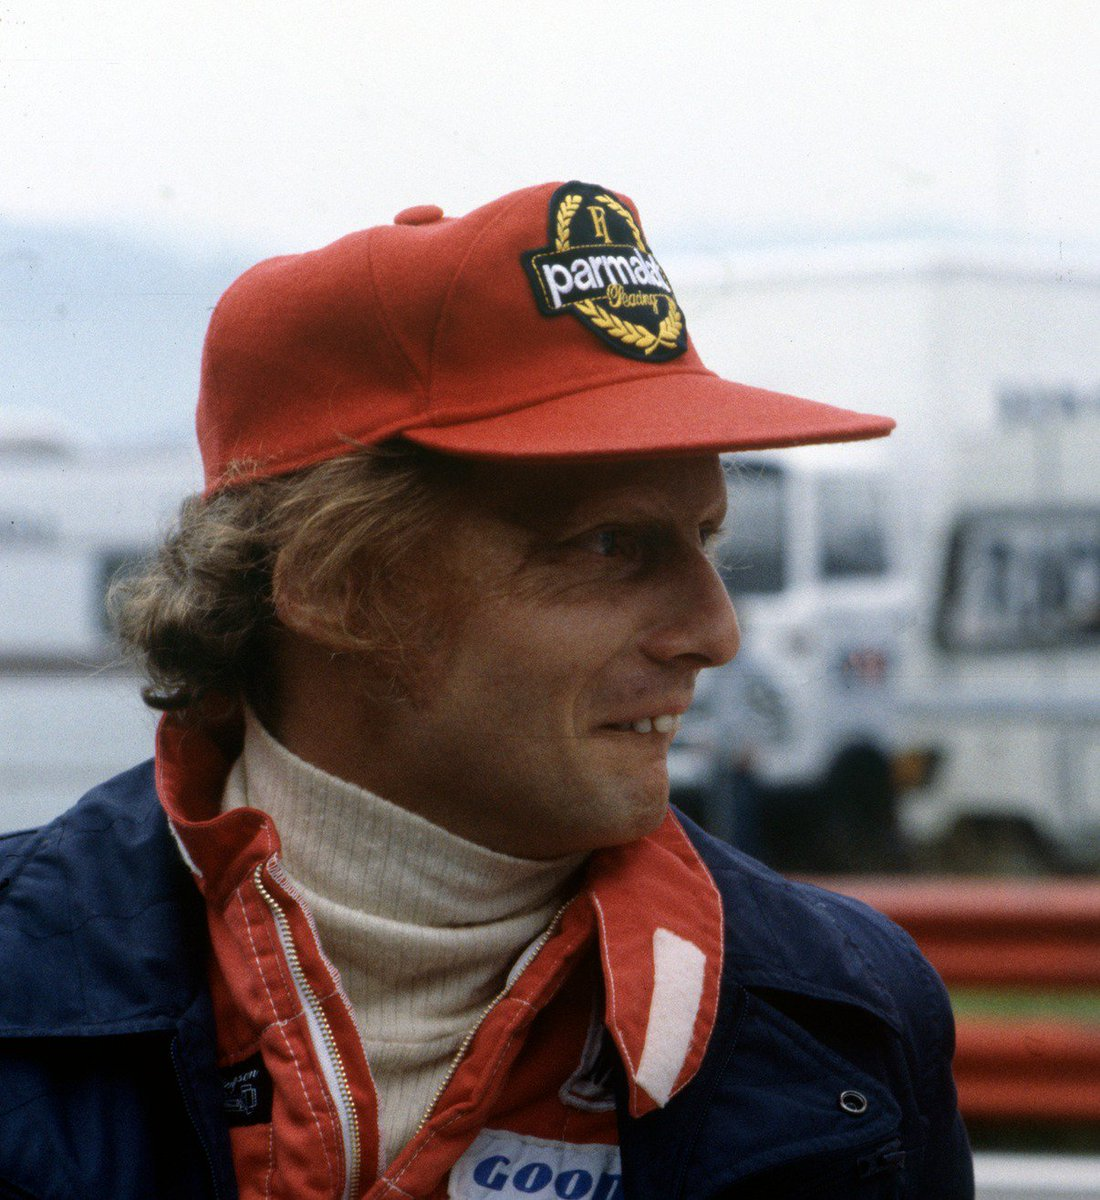 A legend and inspiration for all motorsport fans. Rest in peace Niki Lauda.